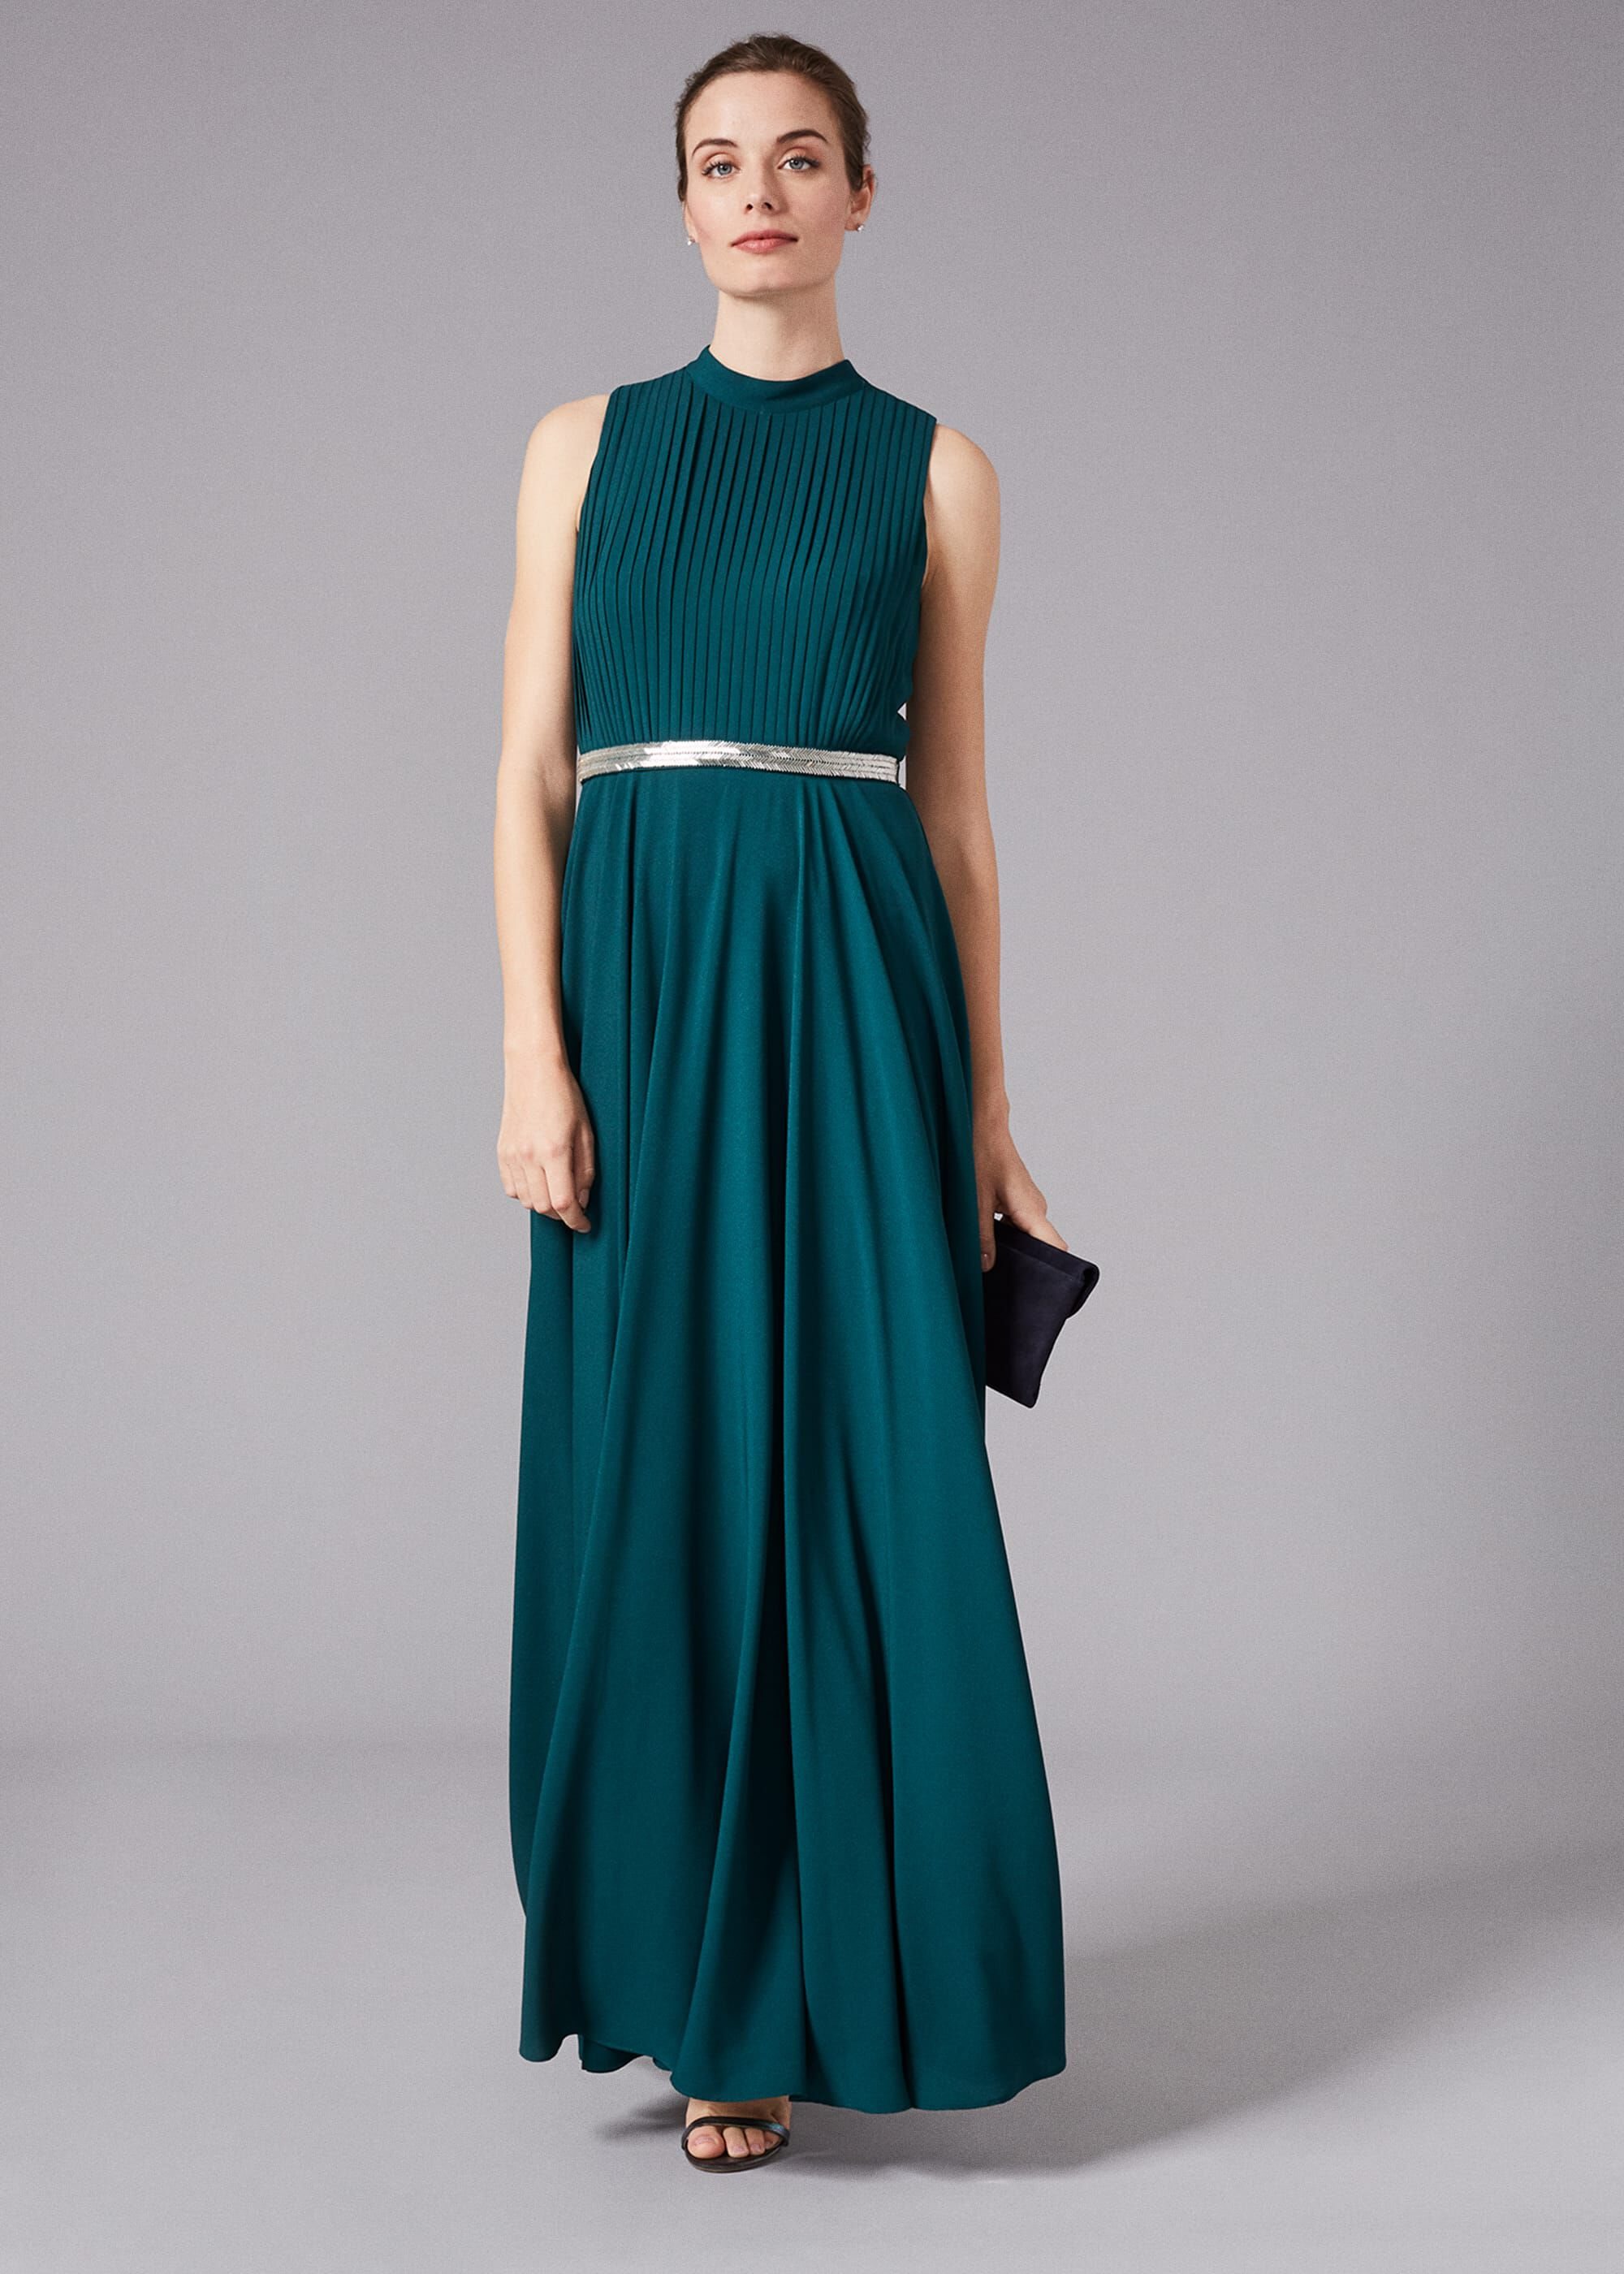 Phase Eight Nicola Embroidered Maxi Dress, Green, Maxi, Occasion Dress